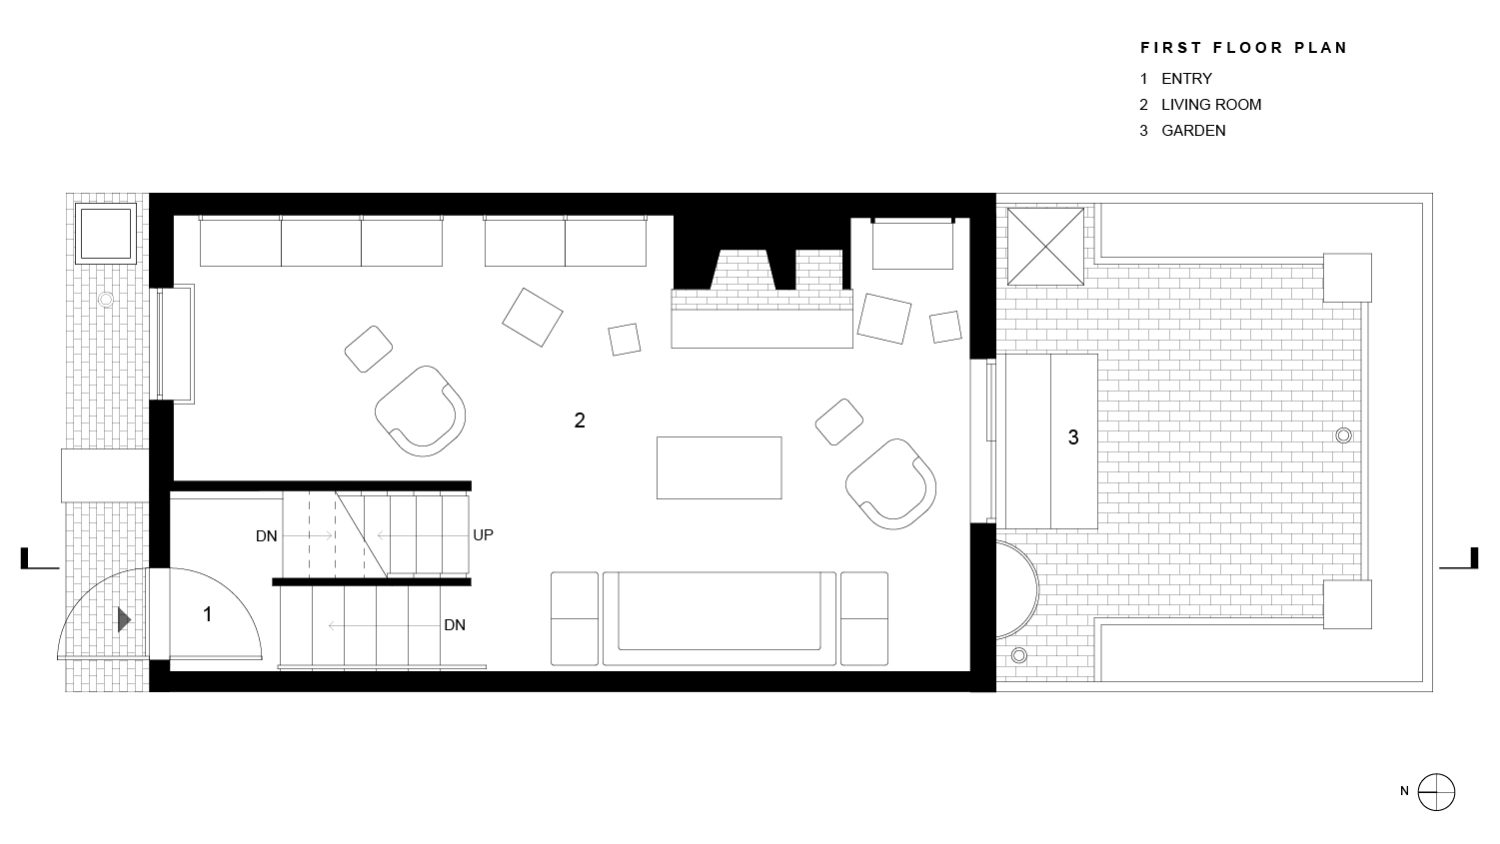 Wright Residence First Floor Plan